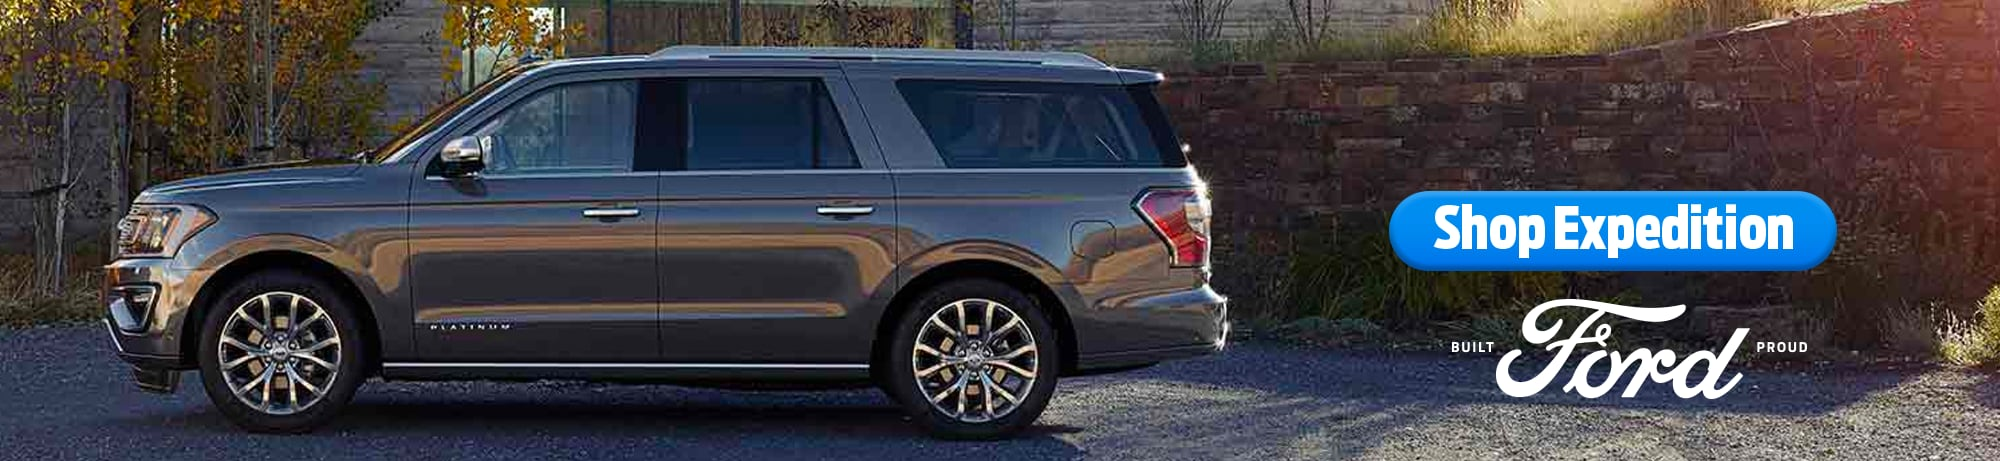 According To J D Power The Ford Expedition Received The Lowest Rate Of Reported Problems For Contestants In The Large Suv Models Category And Earned The